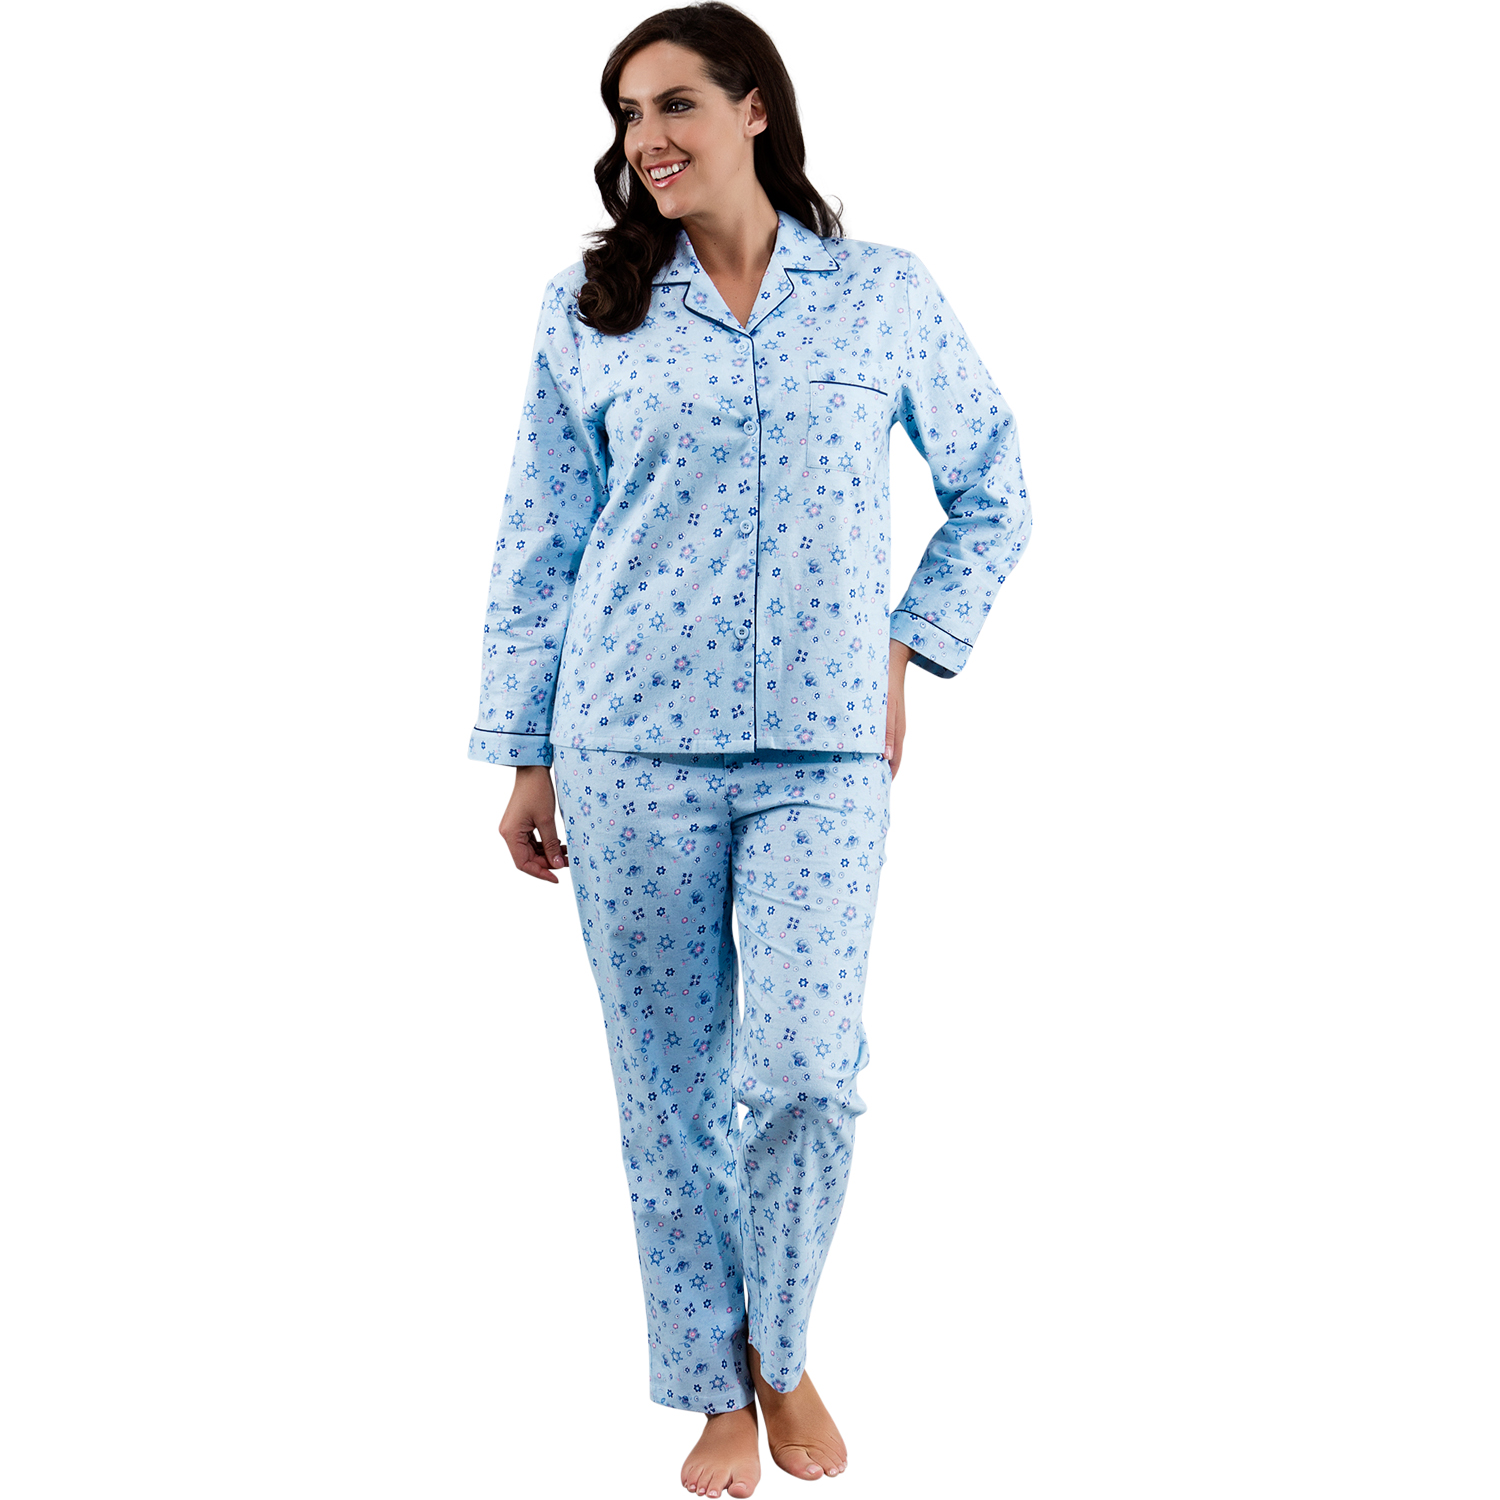 Women's Pyjamas. Elegant jersey, rich cottons, luxurious lace trim, ladylike palazzos, cute cropped pants and shorts sets - this season lazing around in pyjamas will be anything but a sloppy affair.